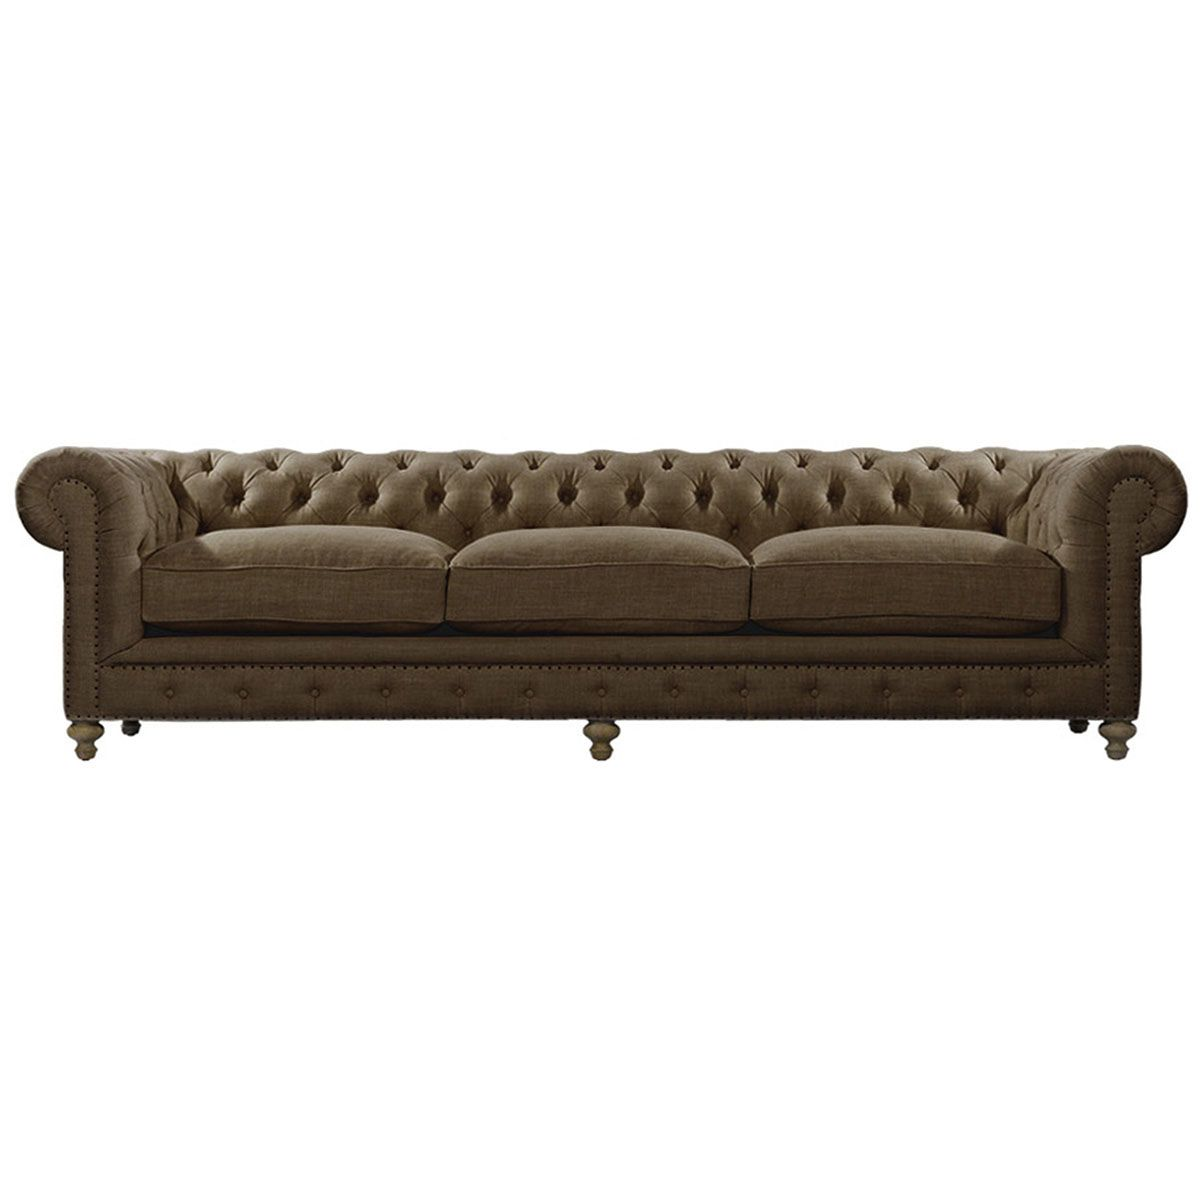 "Obaco Ghana Limited Home: Curations Limited 118"" Cigar Club Sofa 7842.0004.A008"